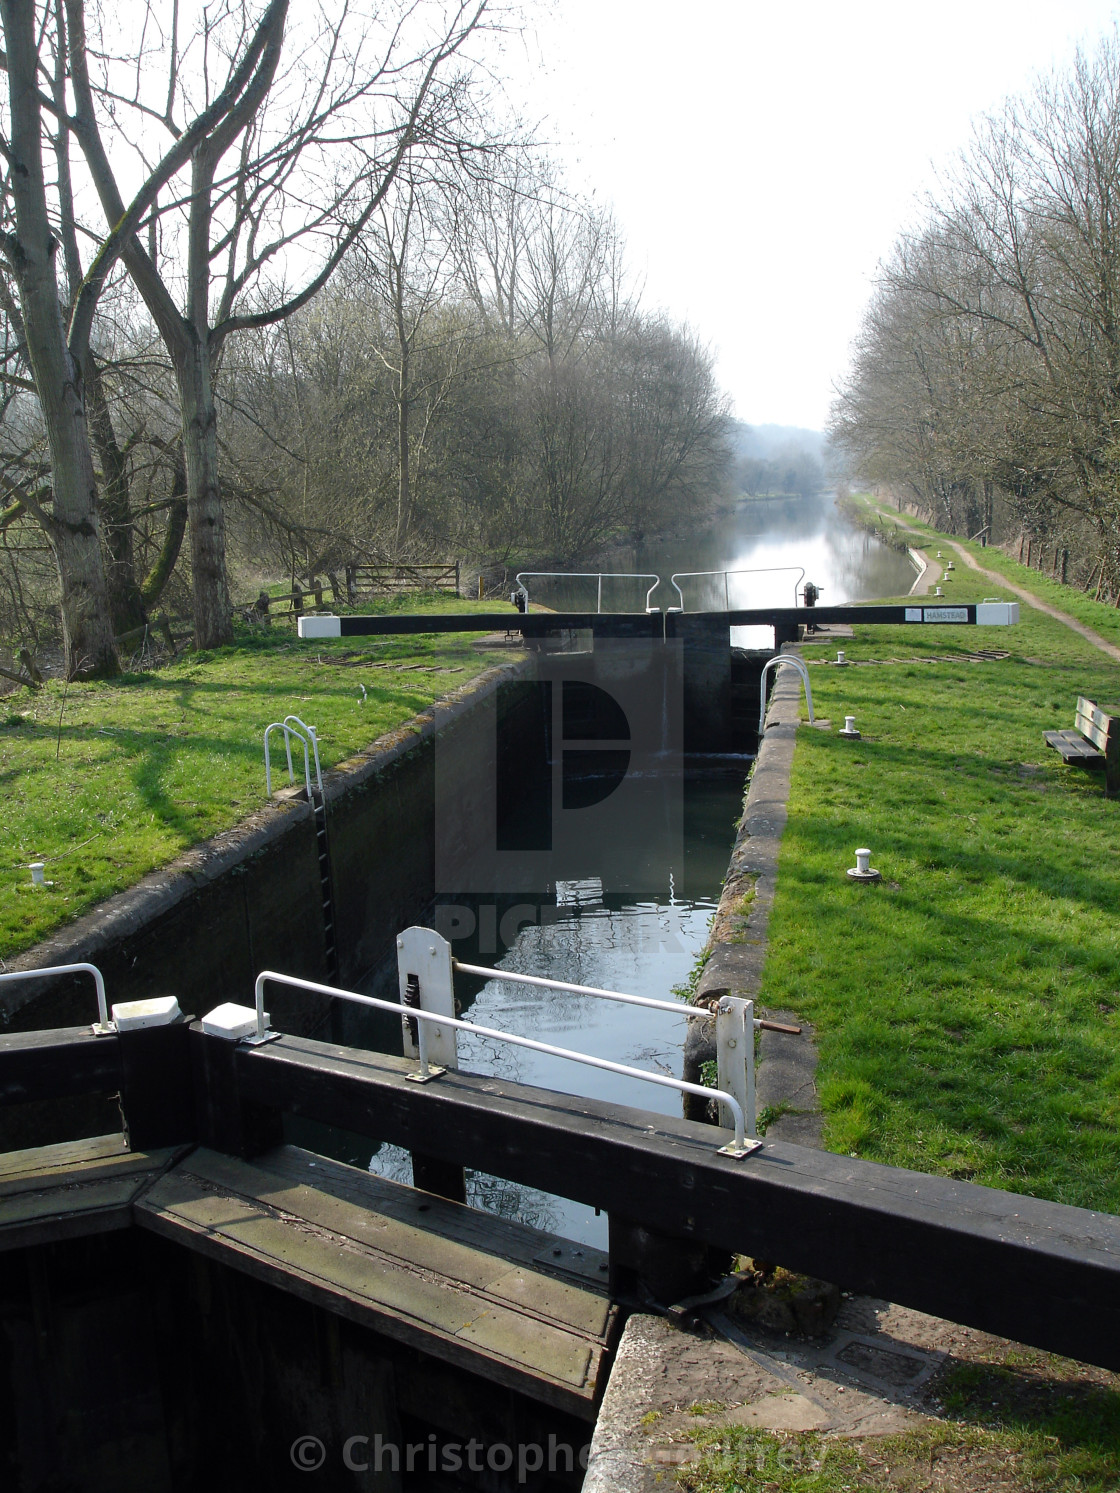 """Hamstead Lock on the Kennet and Avon Canal between Kintbury and Newbury, Berkshire"" stock image"